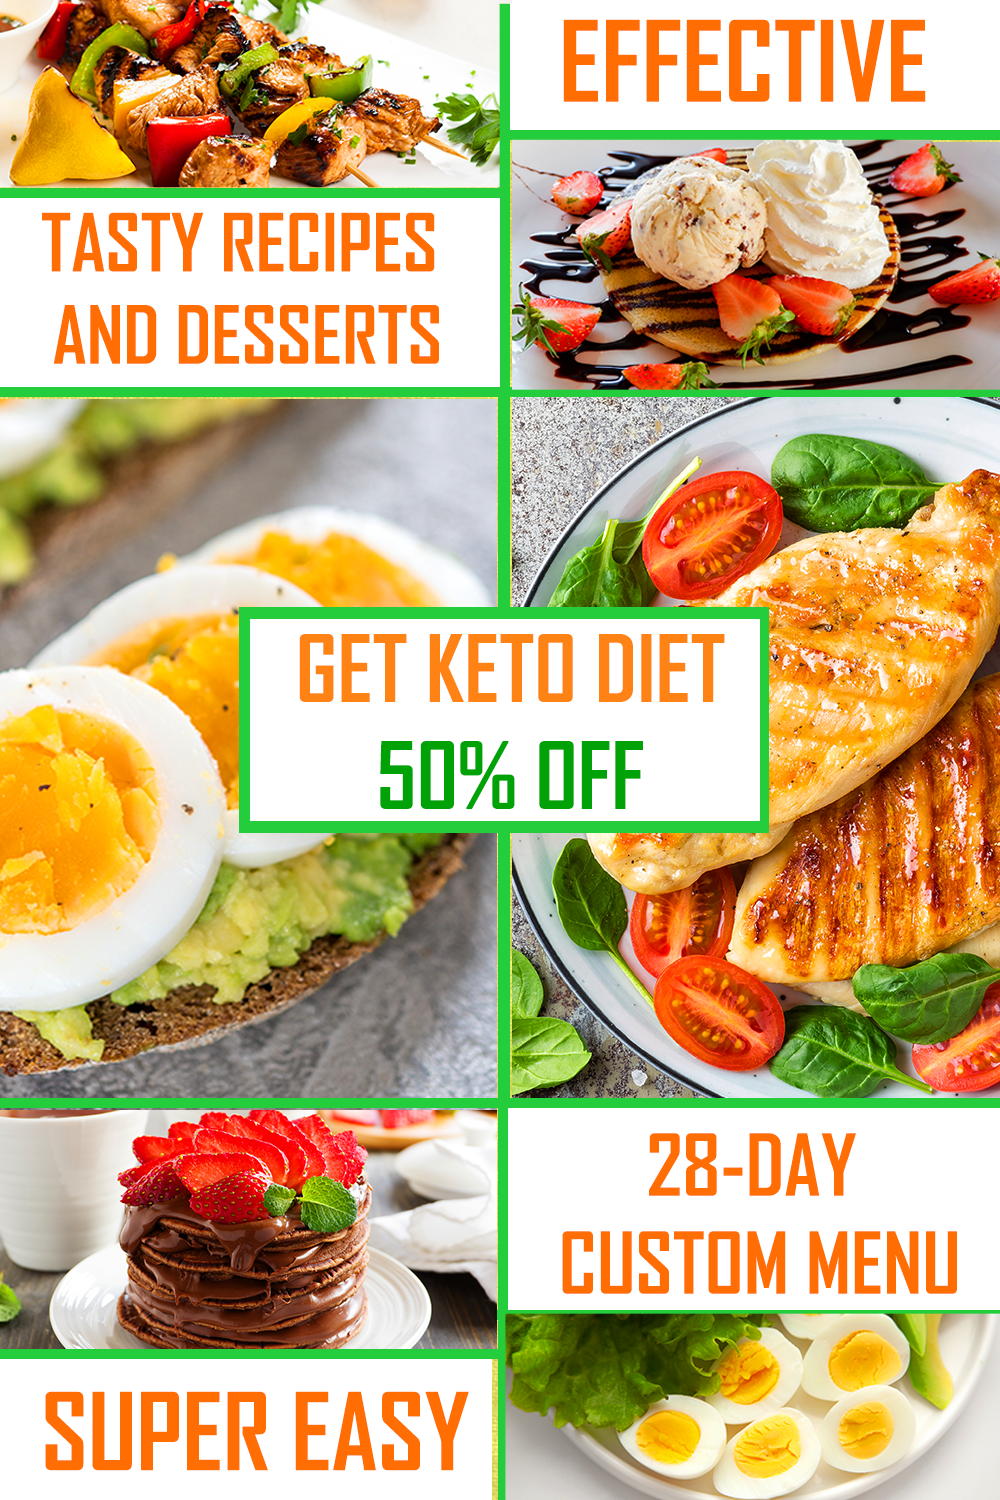 Keto Diet - the Key to burning Fats as Fuel images